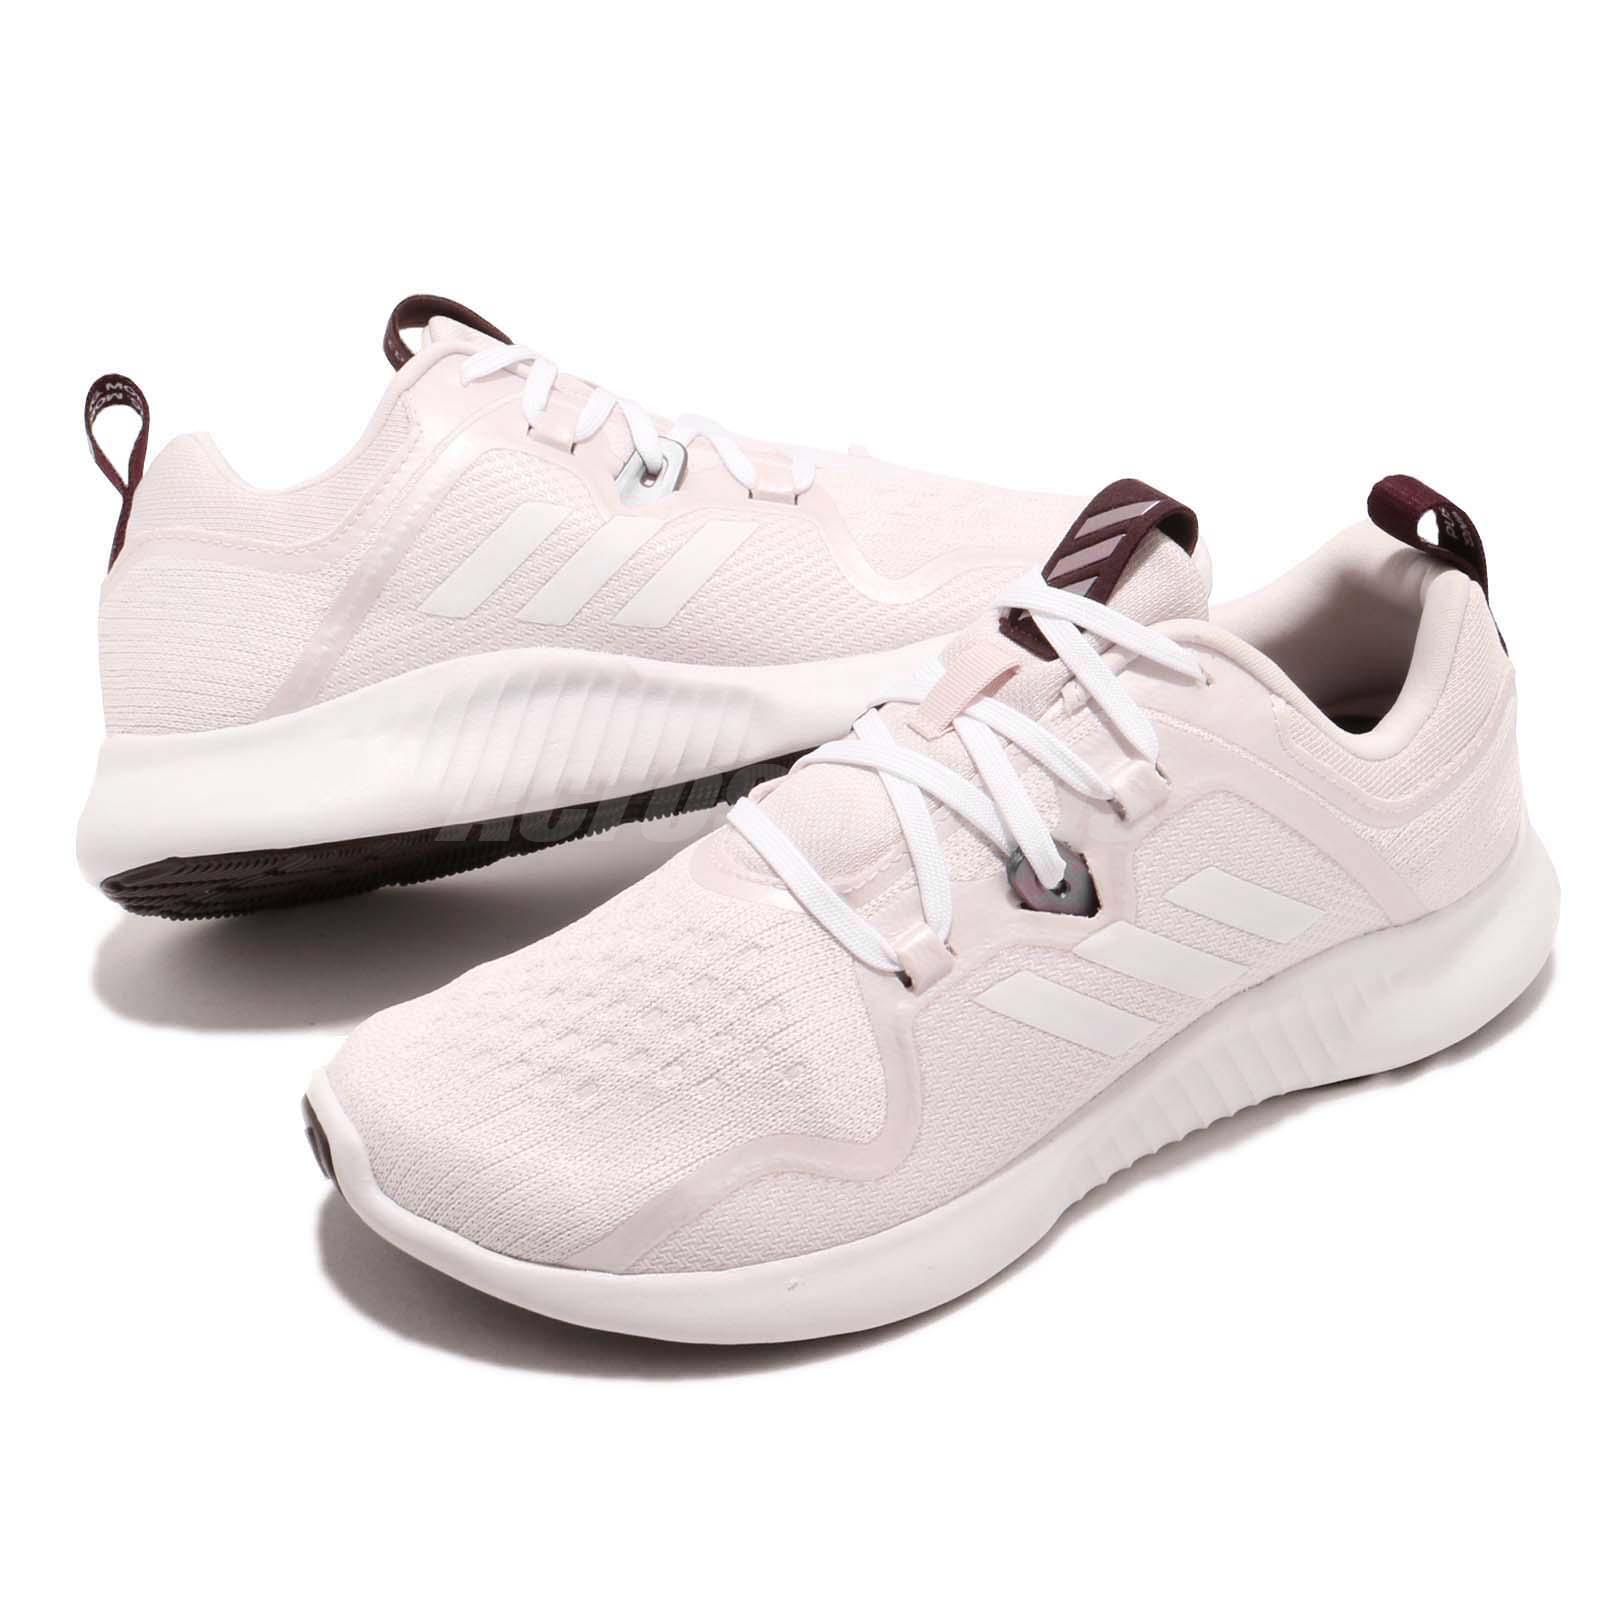 promo code d00b4 12529 Details about adidas EdgeBOUNCE W Pink White Women Running Training Shoes  Sneakers BB7562